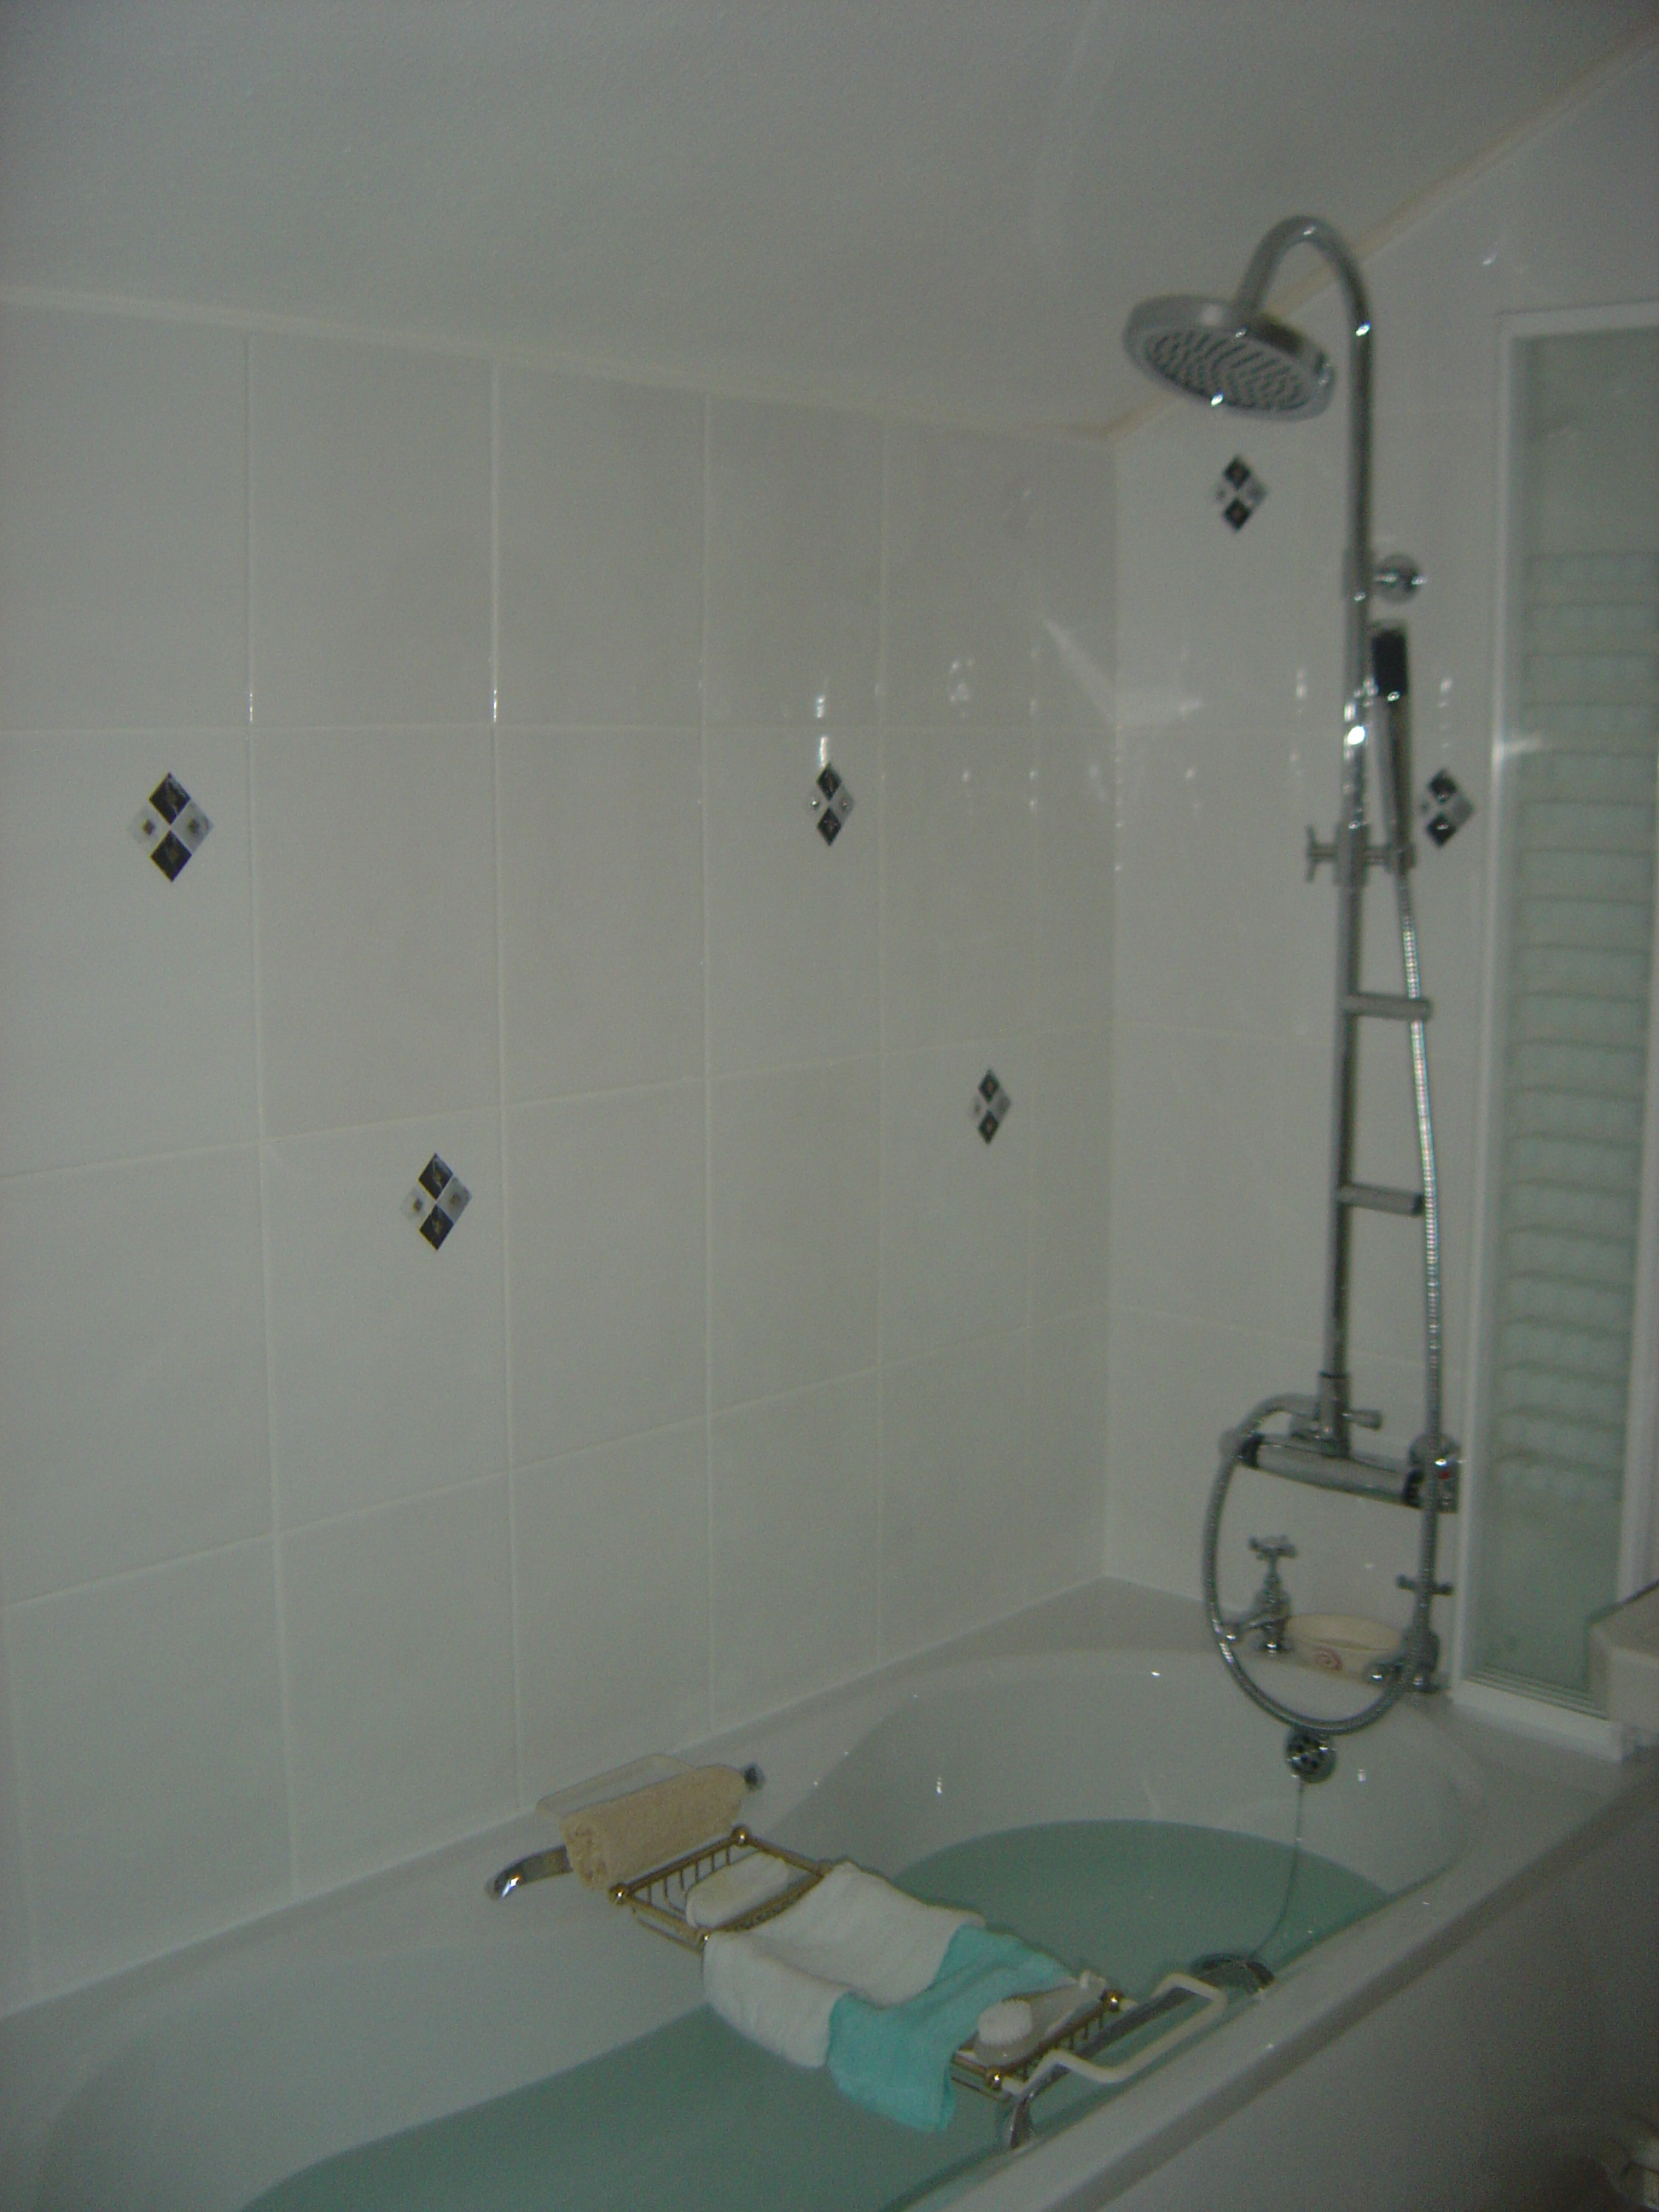 grout | PAB and Son Plumbing and Property Services